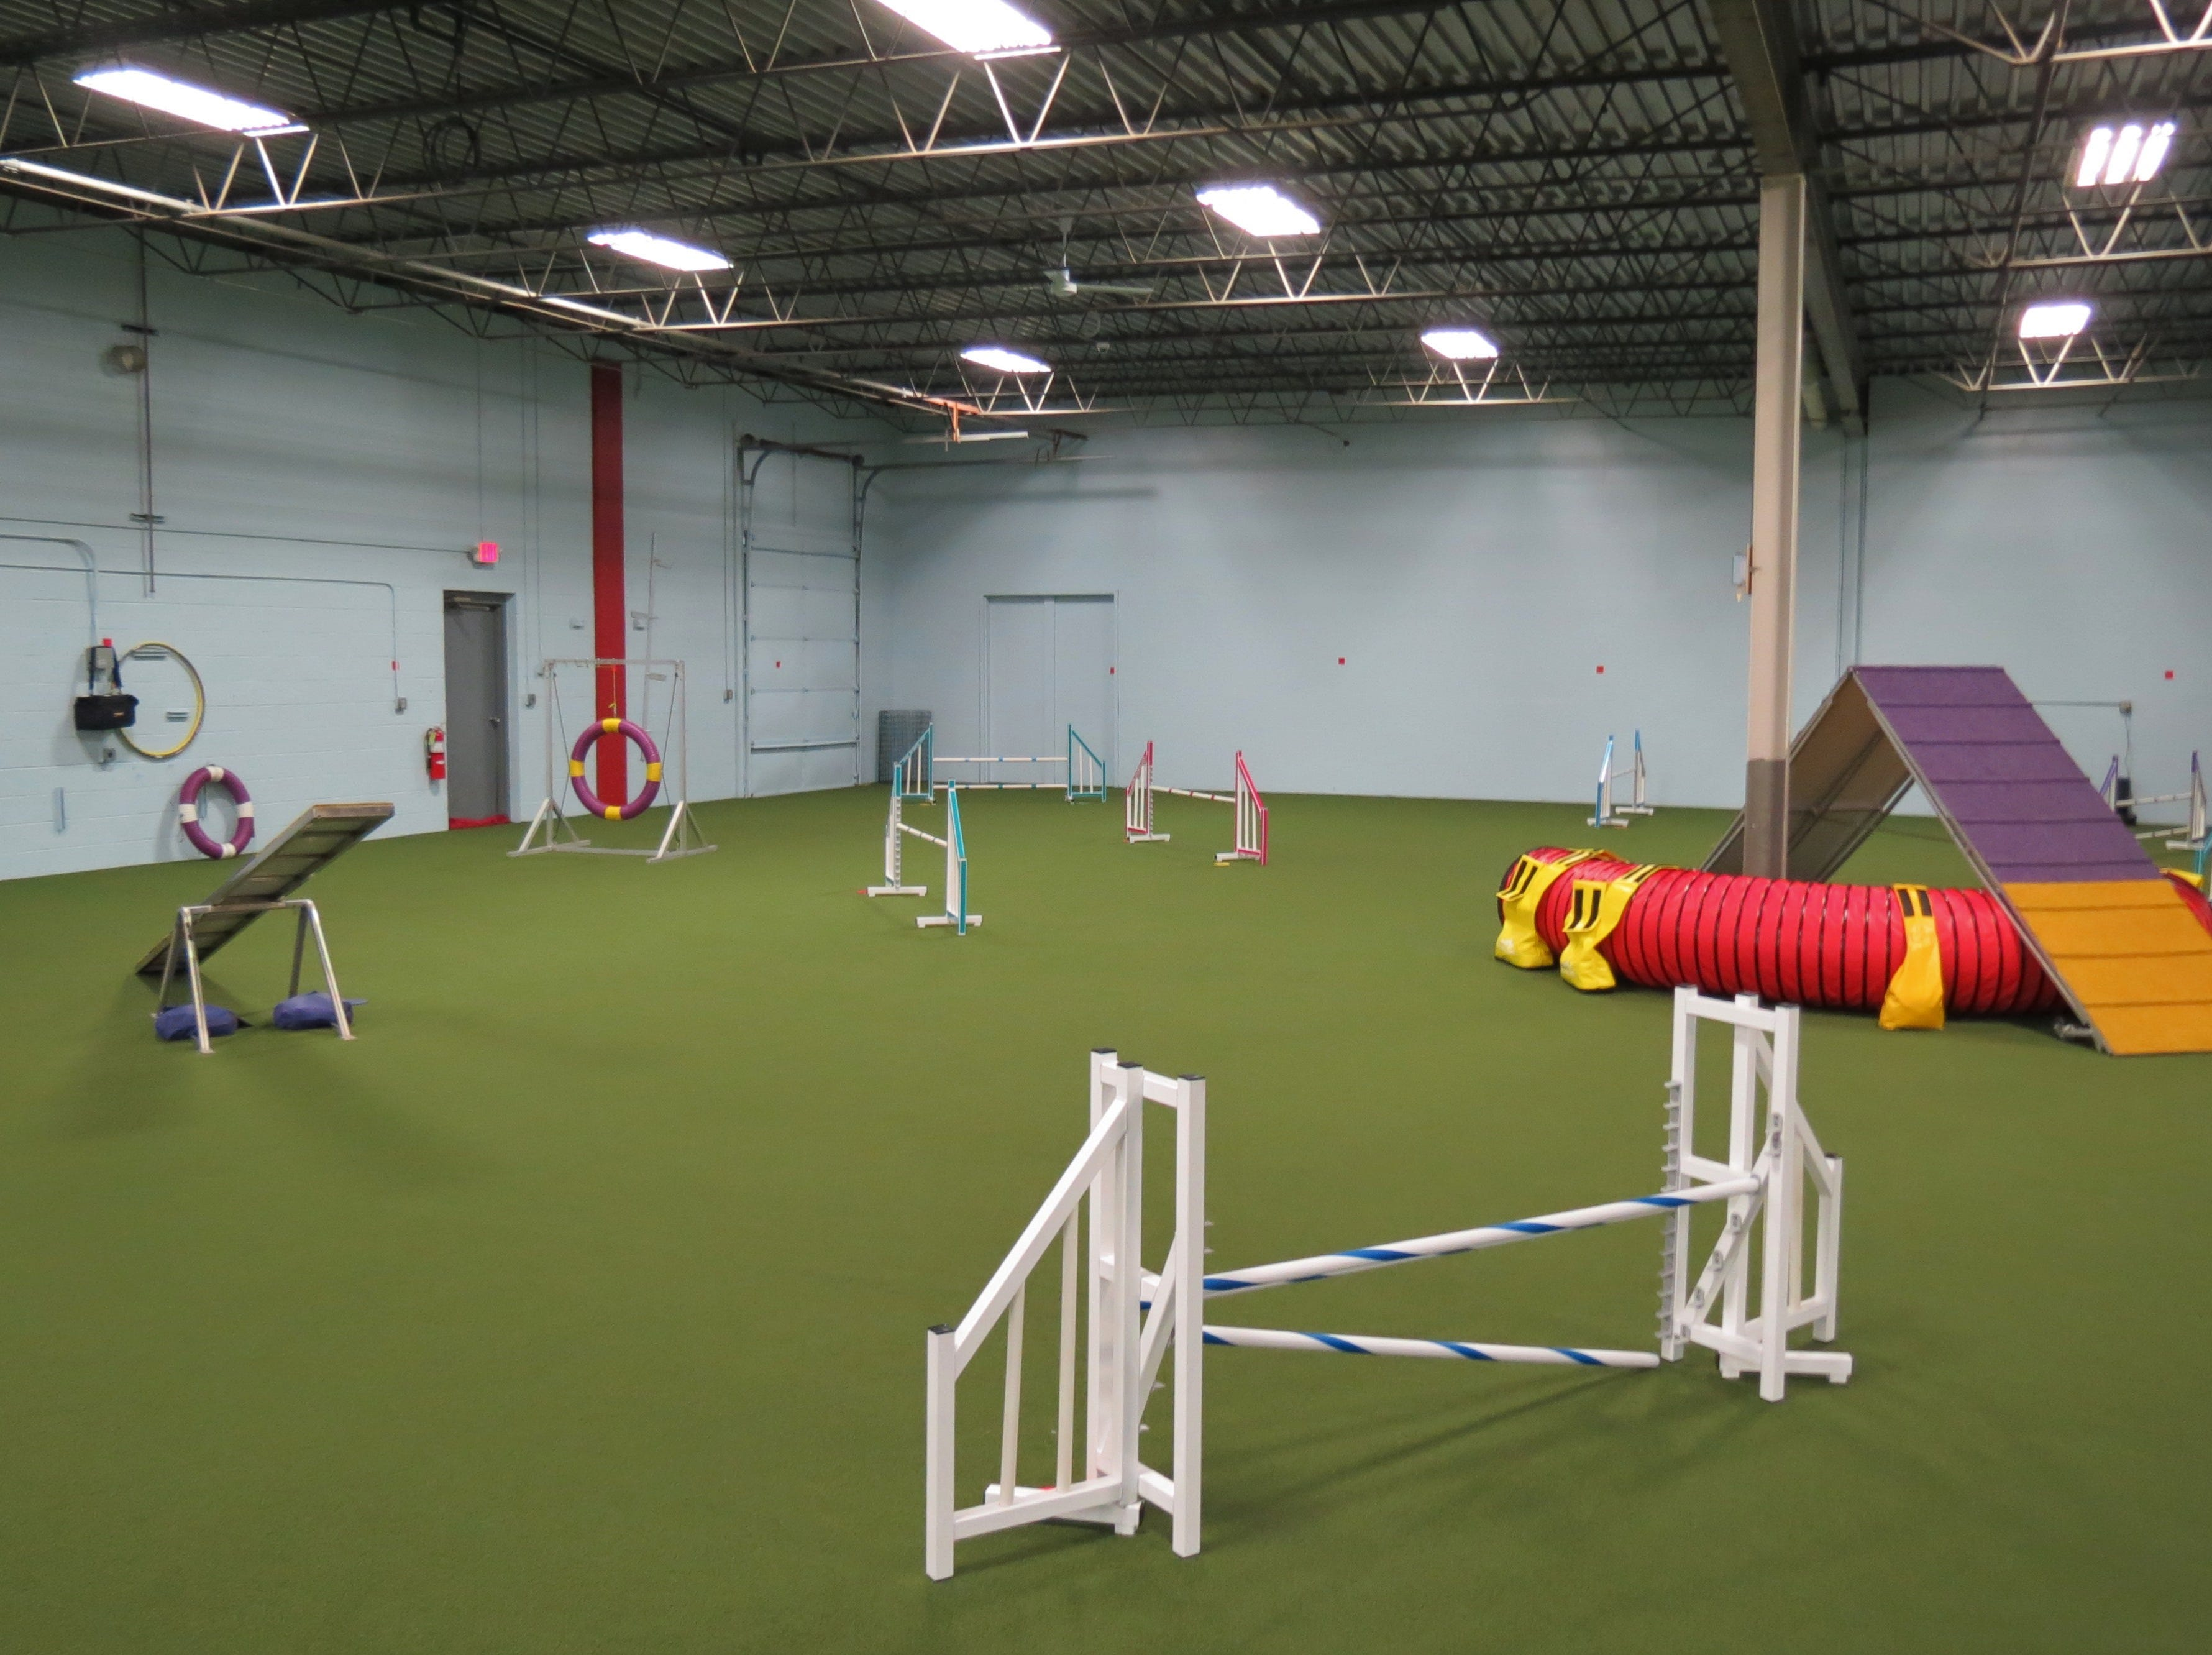 The Redline dog training center is setting up its regulation-grade equipment before it opens mid-February.